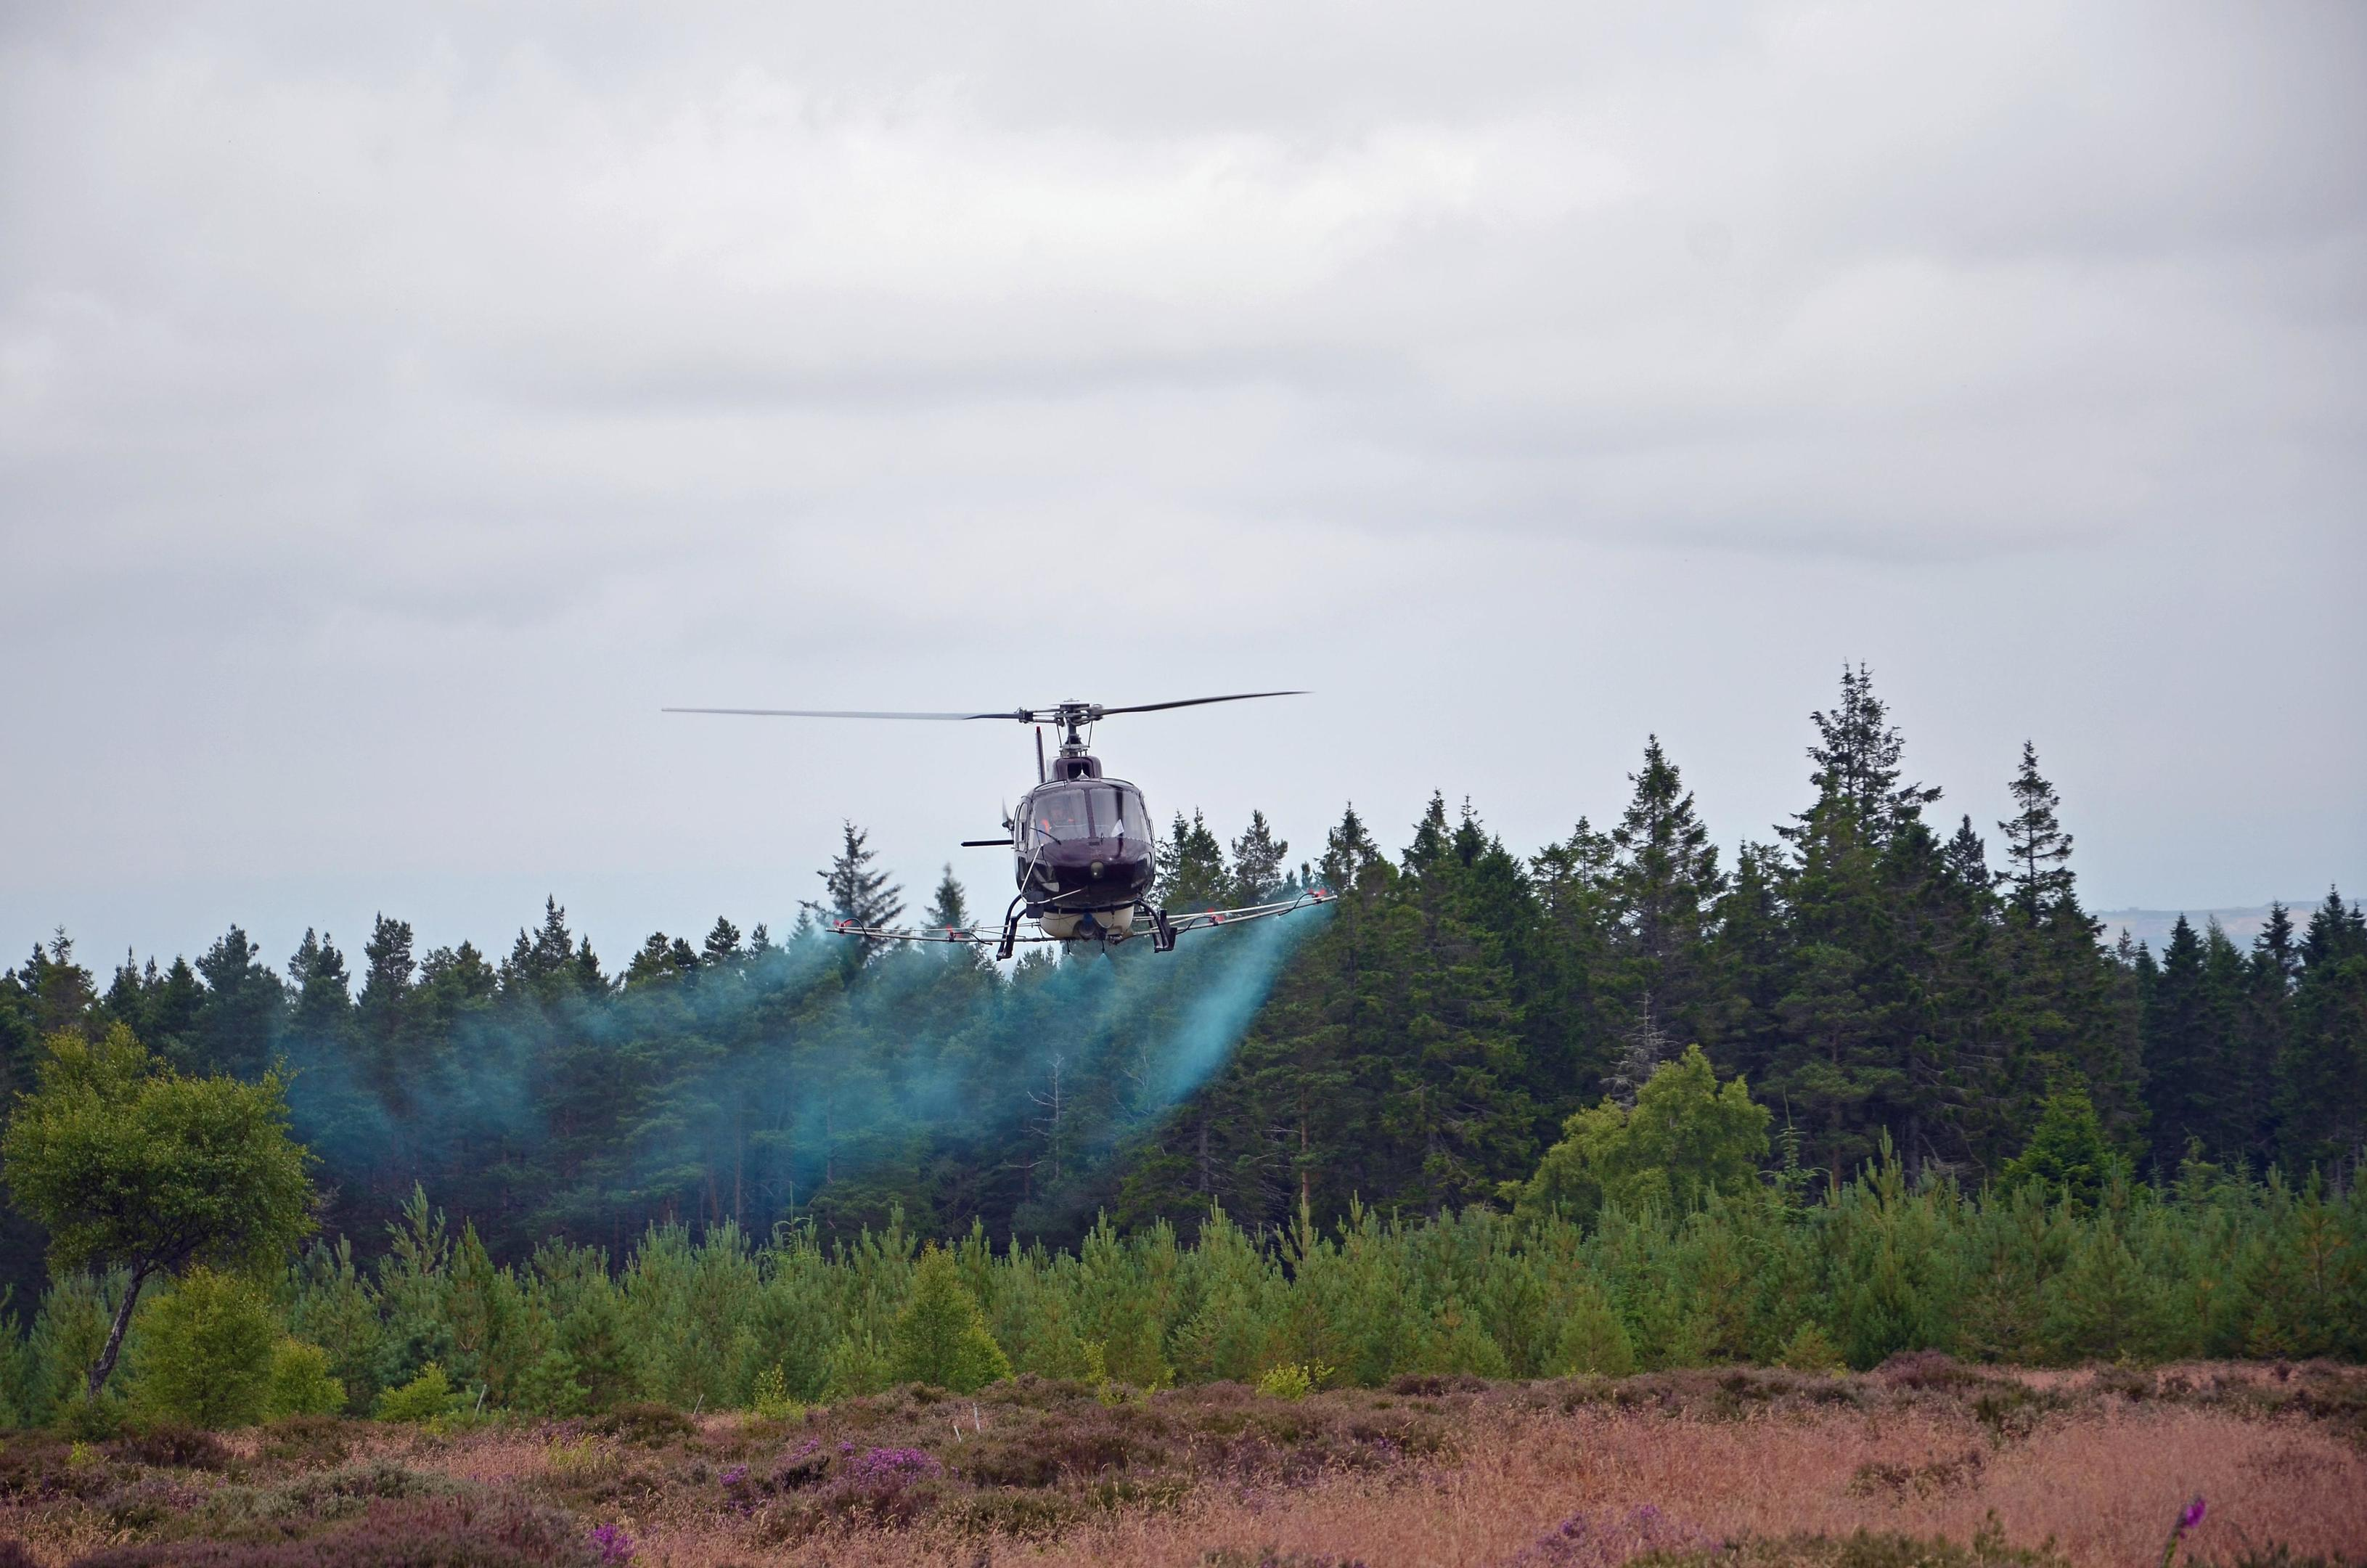 A helicopter spraying fungacide in a previous trial